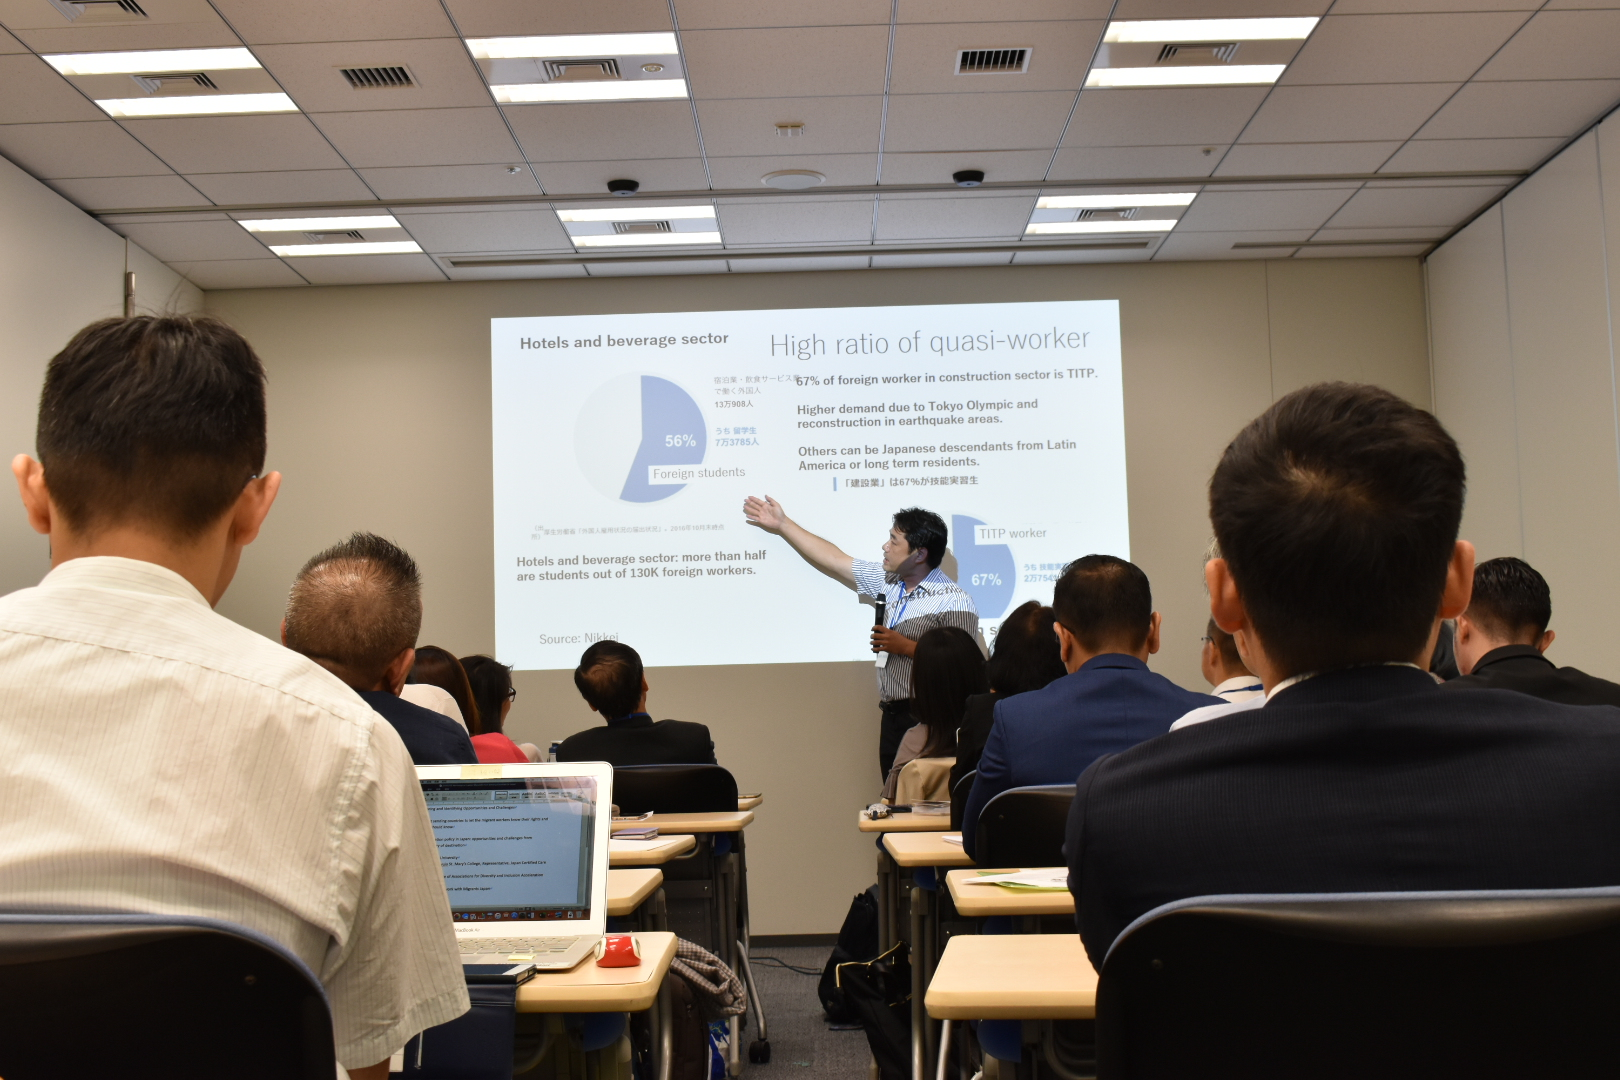 Multi-Stakeholder Workshop on Labour Migration from Mekong Countries to Japan, July 2019, Tokyo, Japan